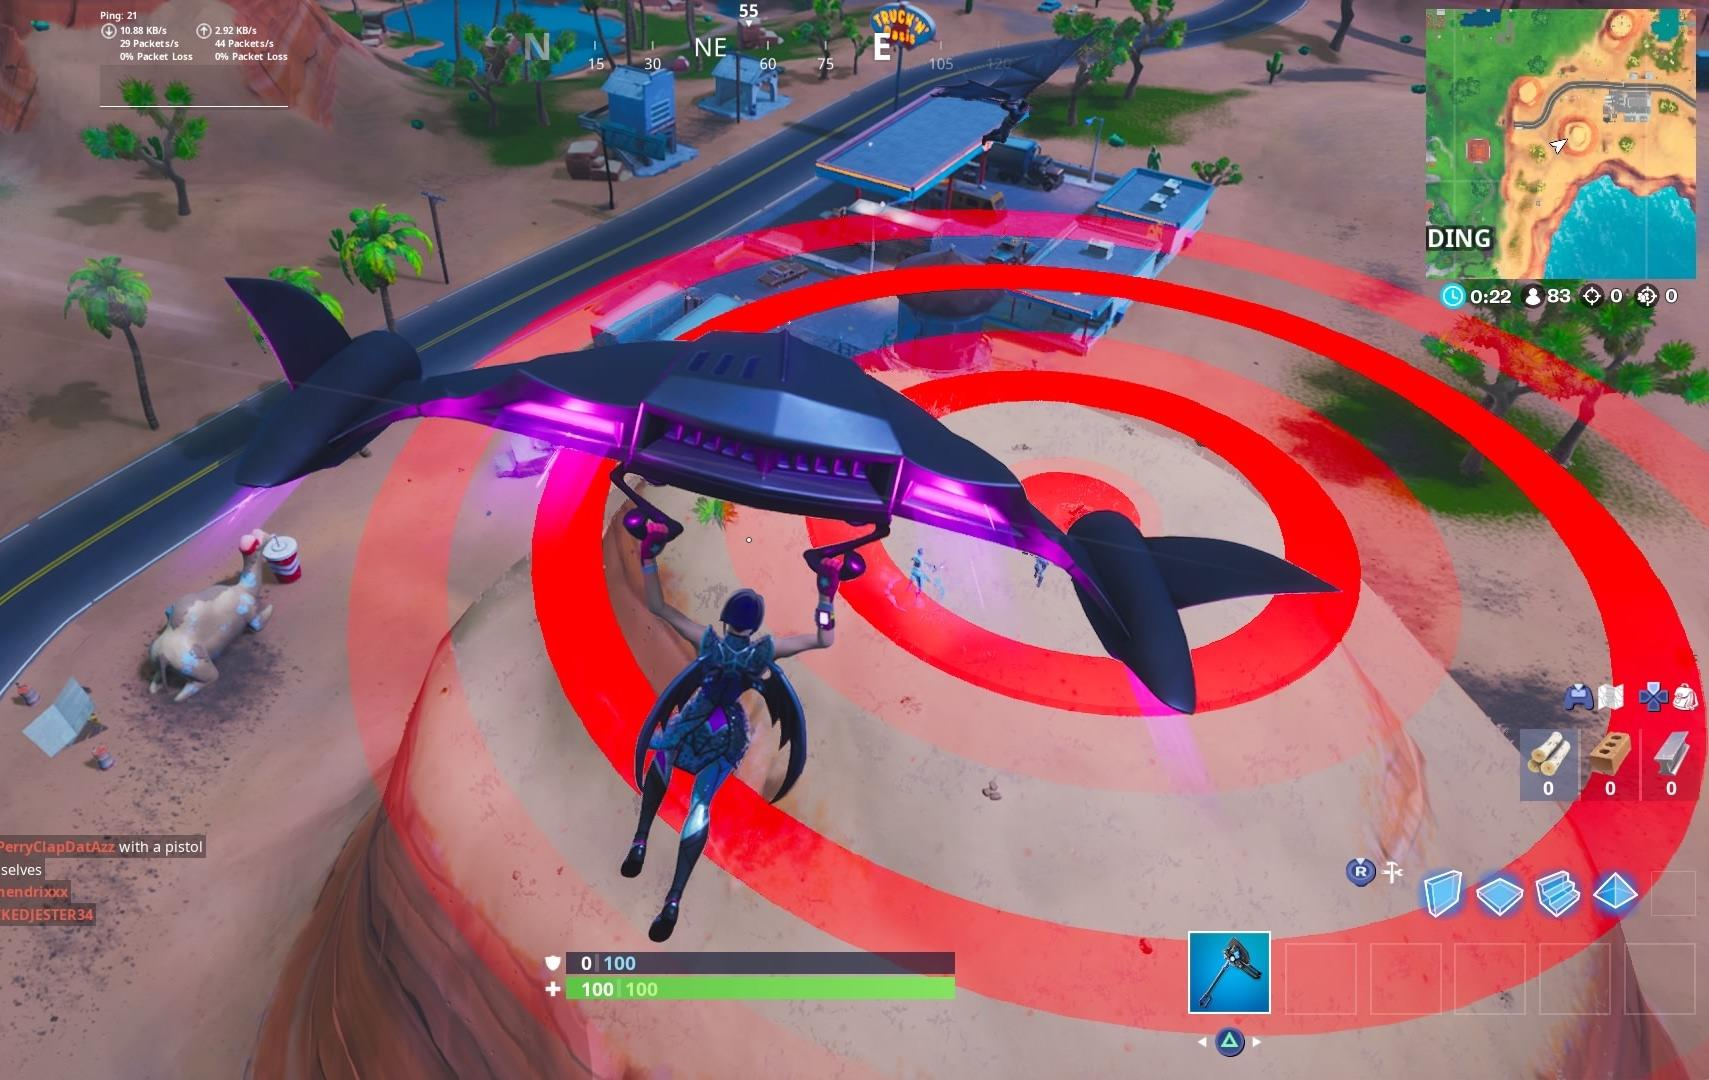 Hit Hard Firing Target Fortnite Fortnite Season 10 Challenges And Where To Find Bullseyes To Land On Cnet